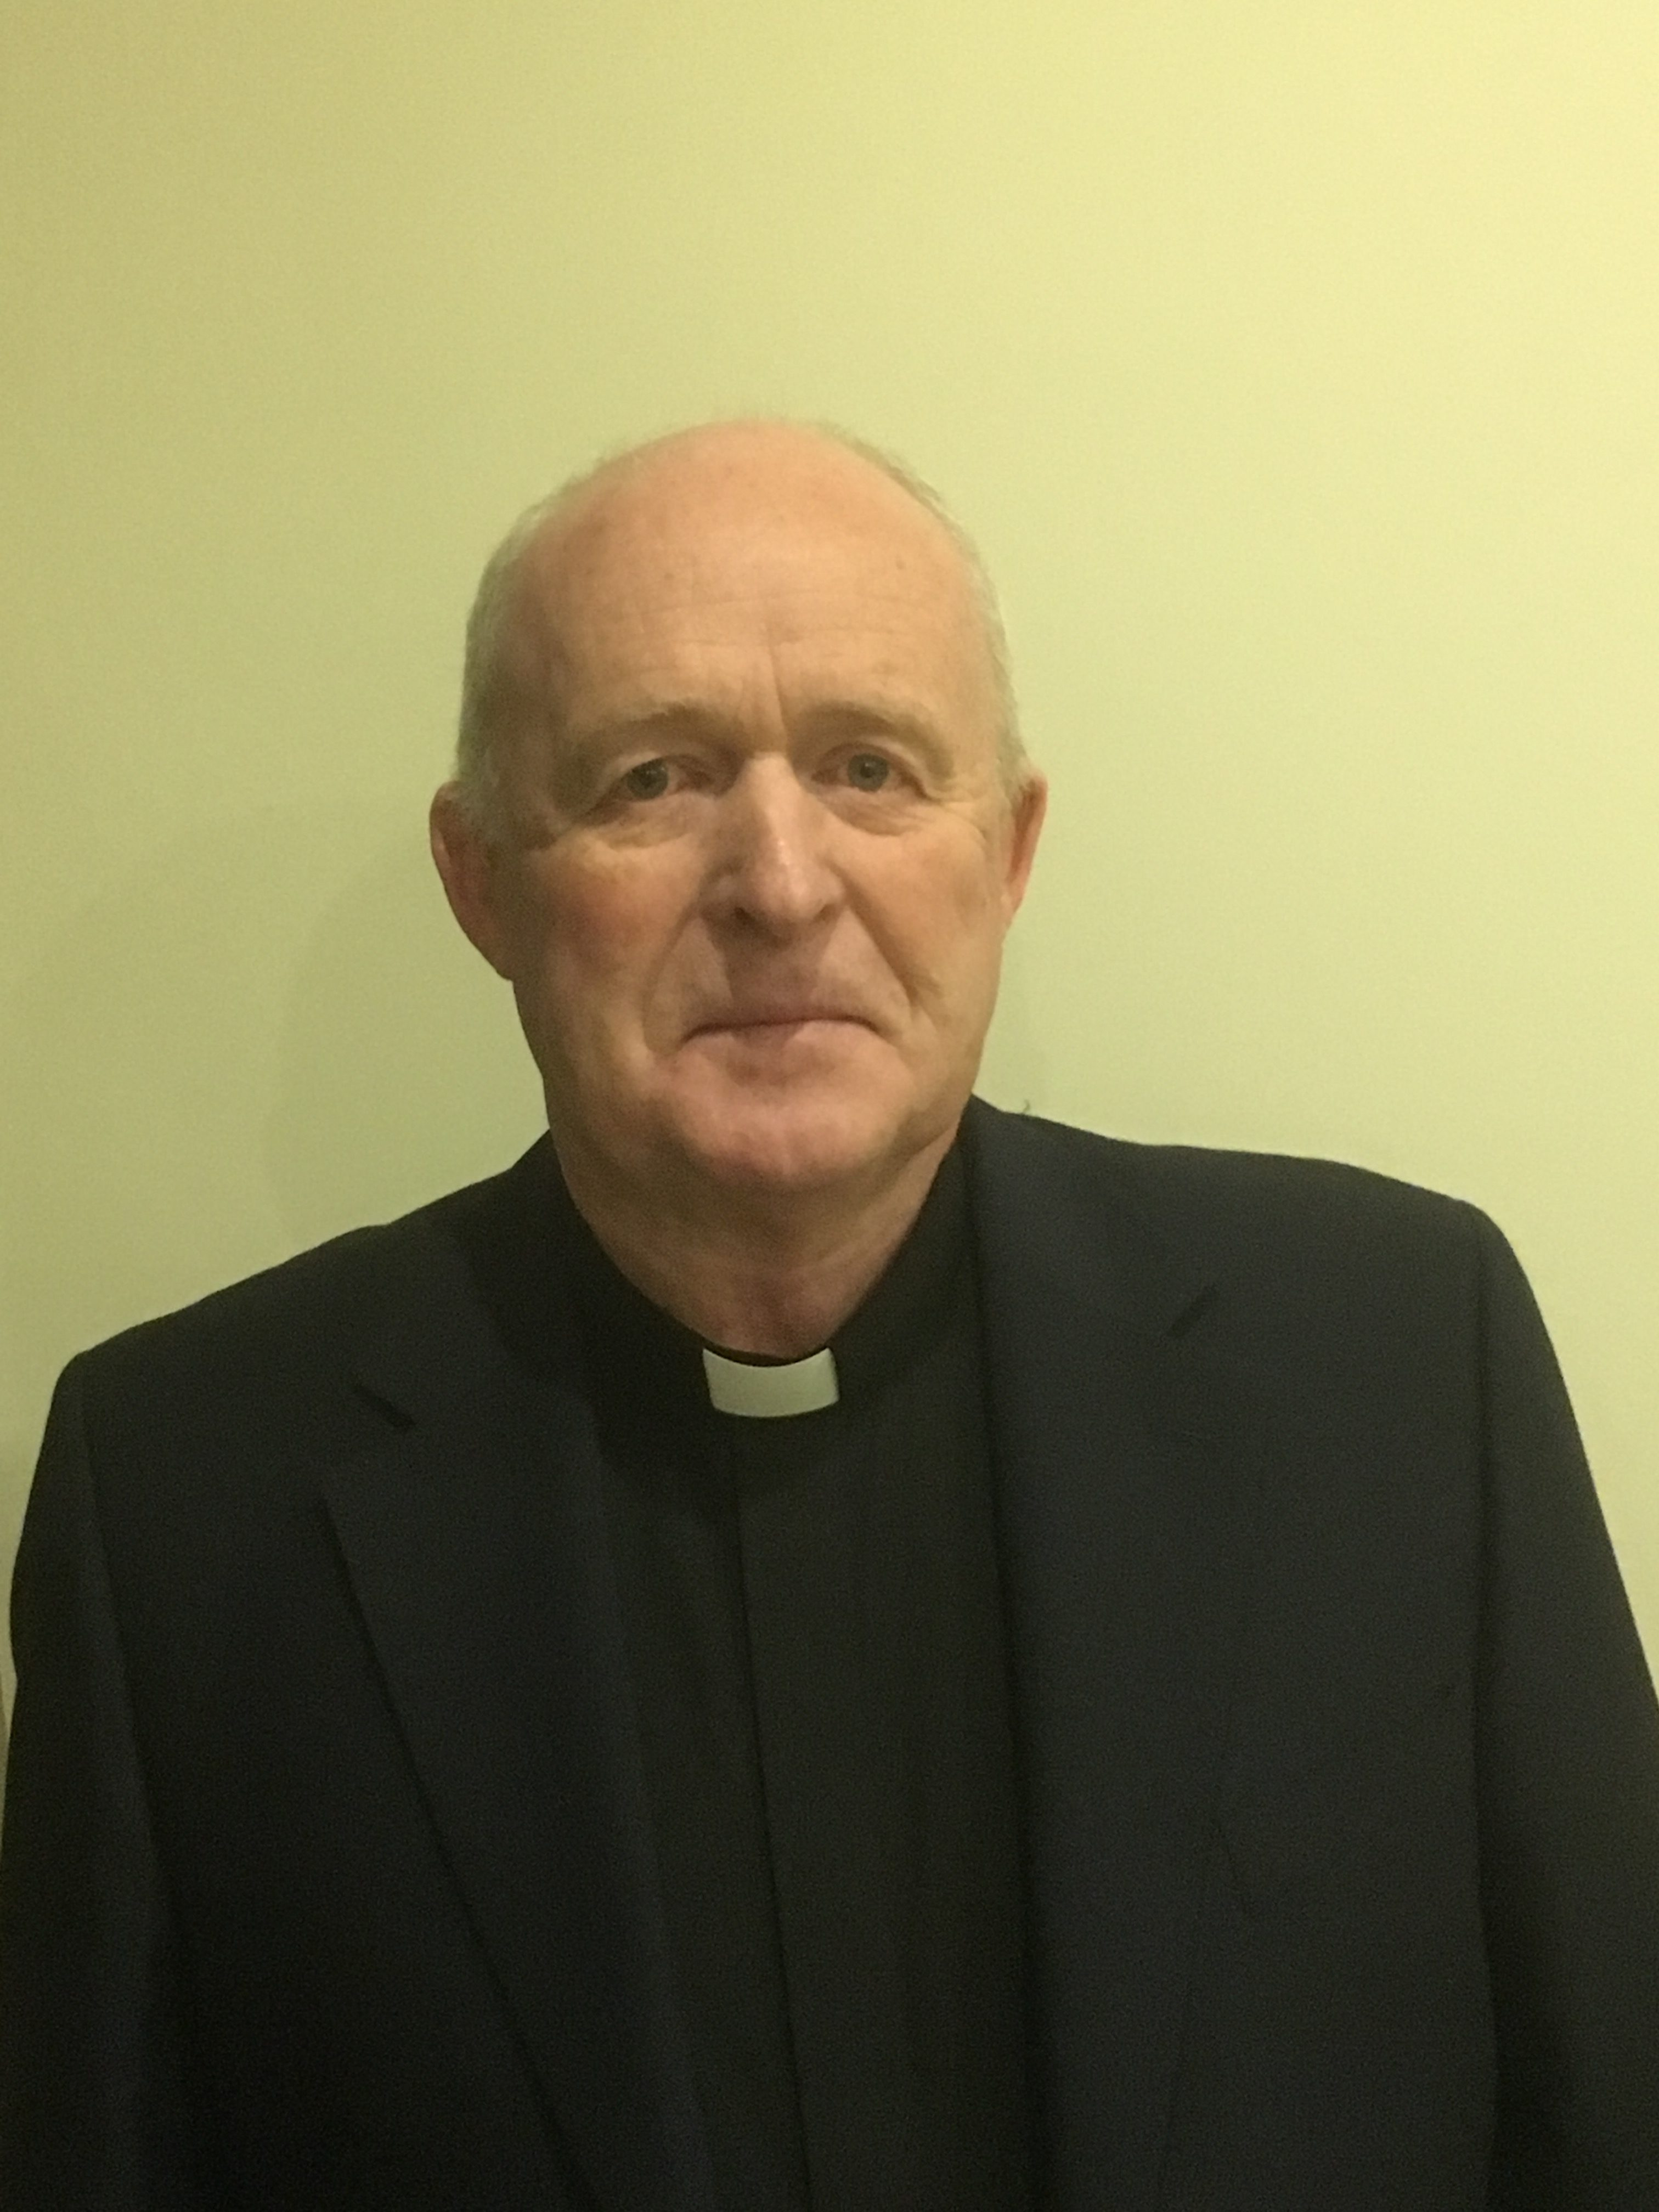 Former Magheracloone Player Mgr Larry Duffy Appointed Bishop of Clogher